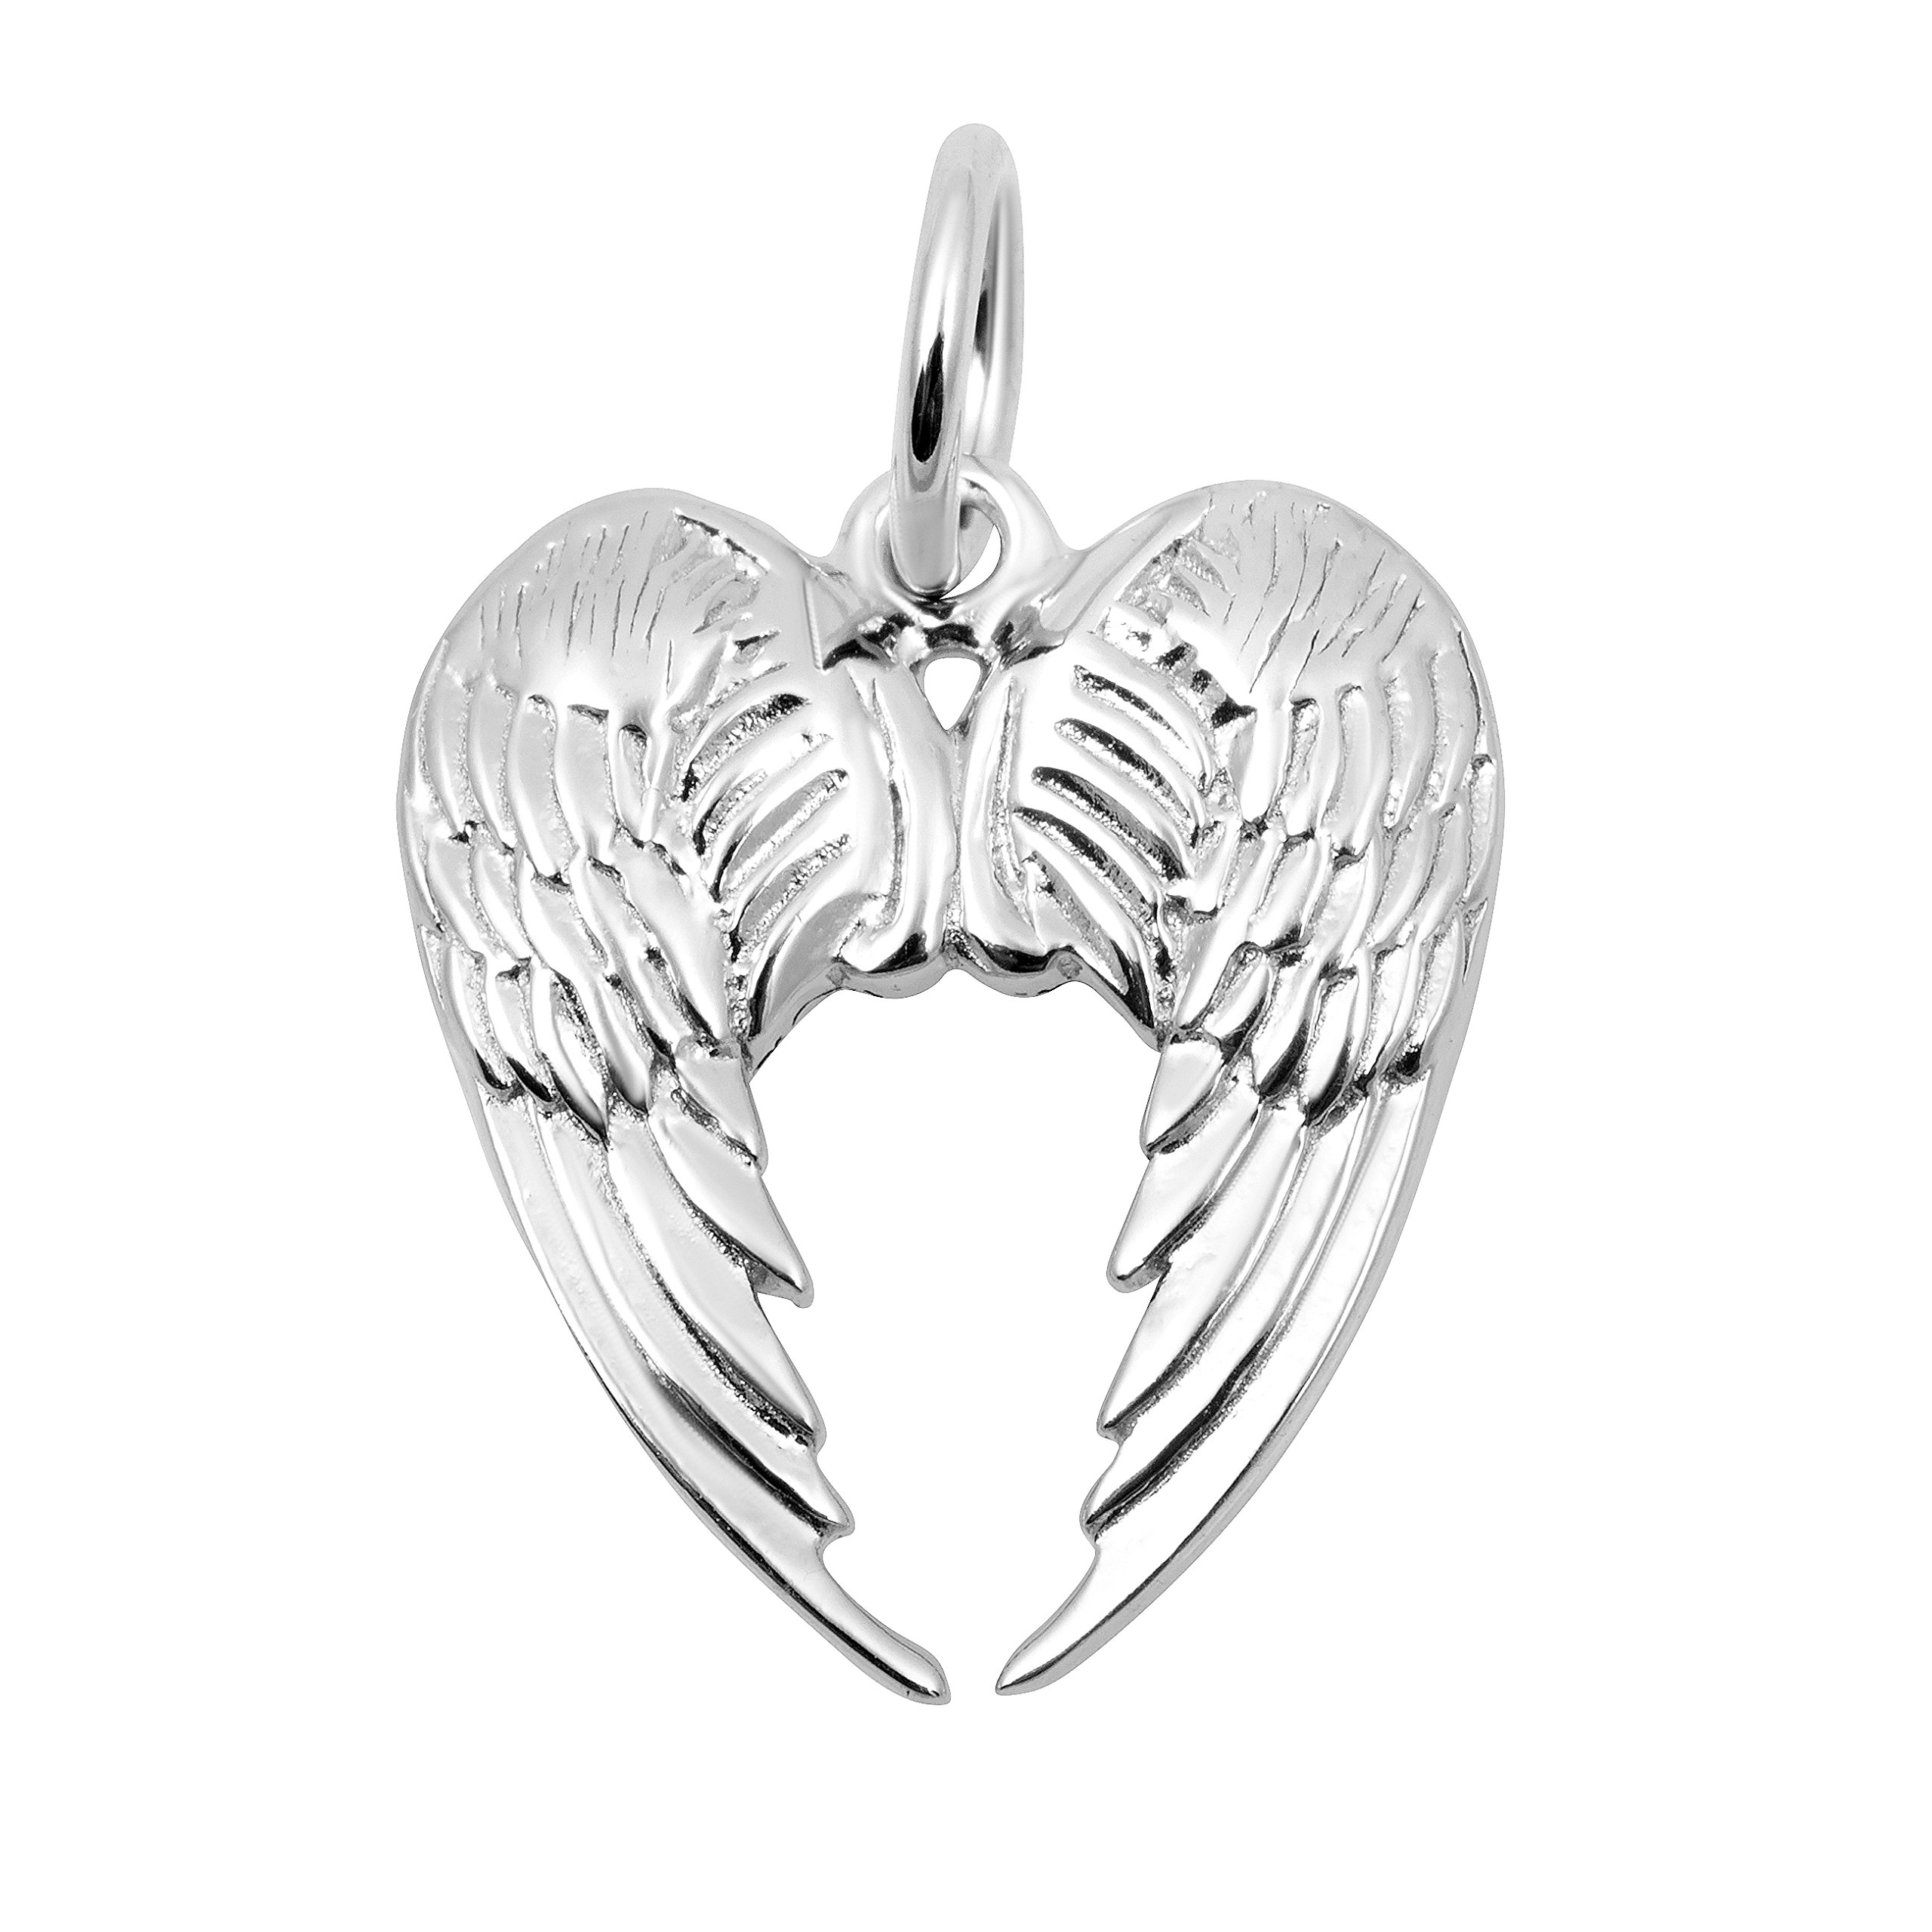 Necklace & Bracelet Charms, Love & Hearts Themed Sterling Silver fine Jewelry by Silver on the Rocks